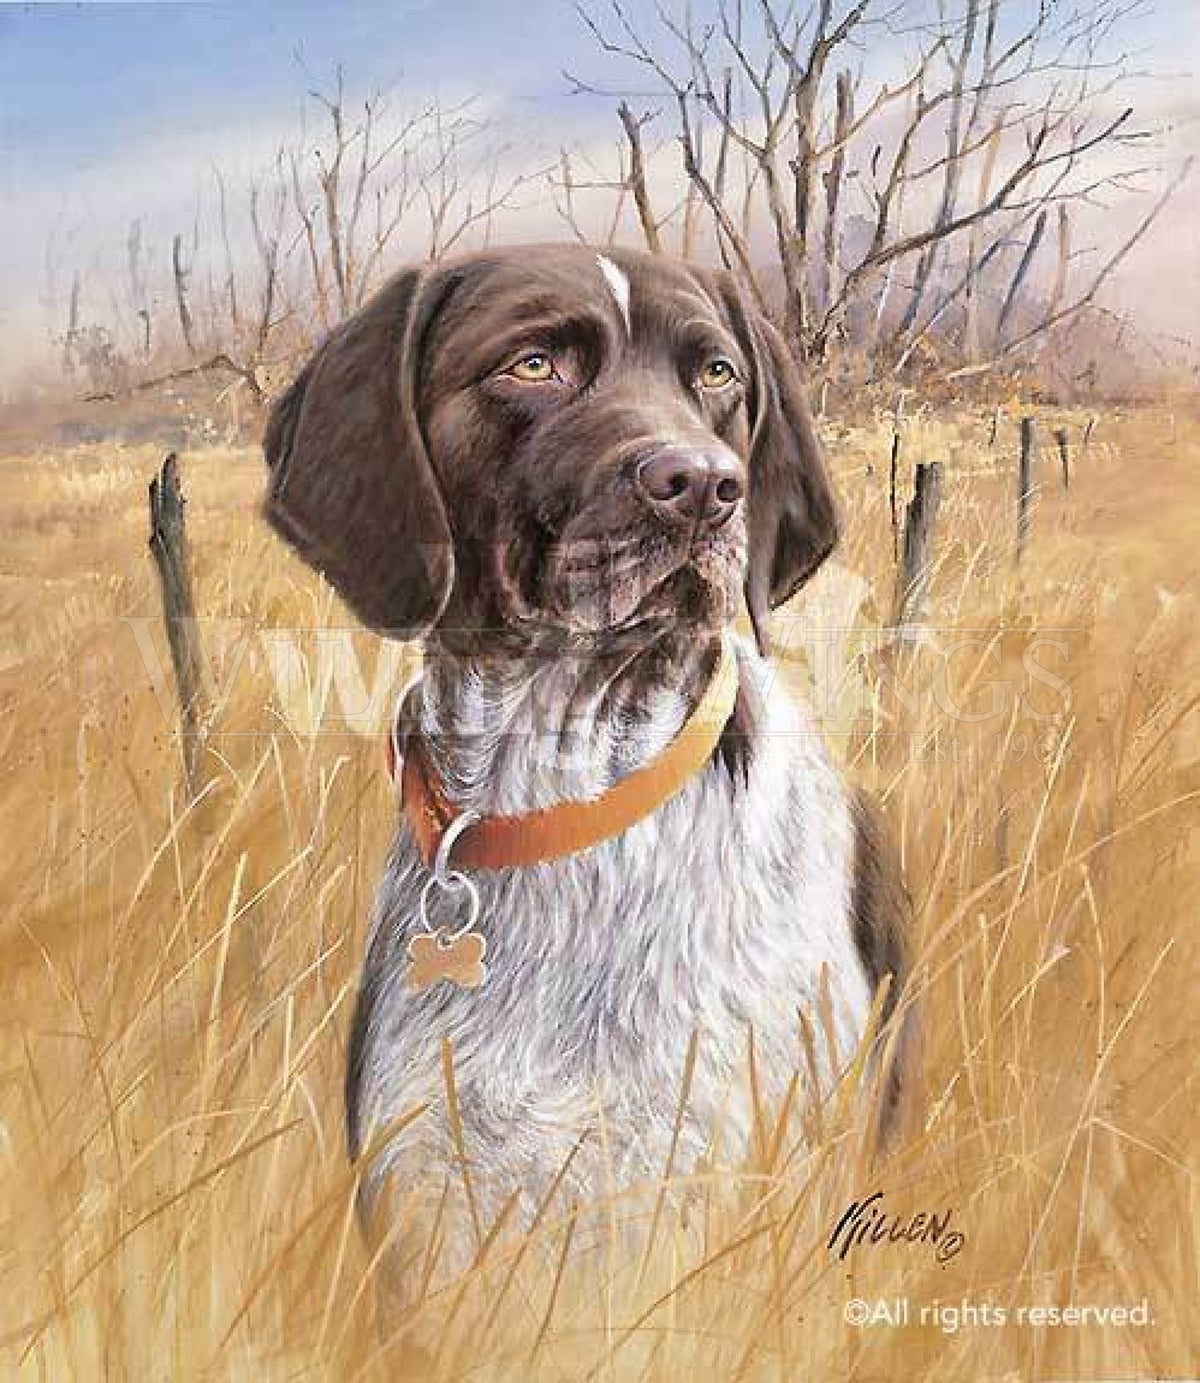 <i>That's My Dog, Too!&mdash;German Shorthair Pointer</i>